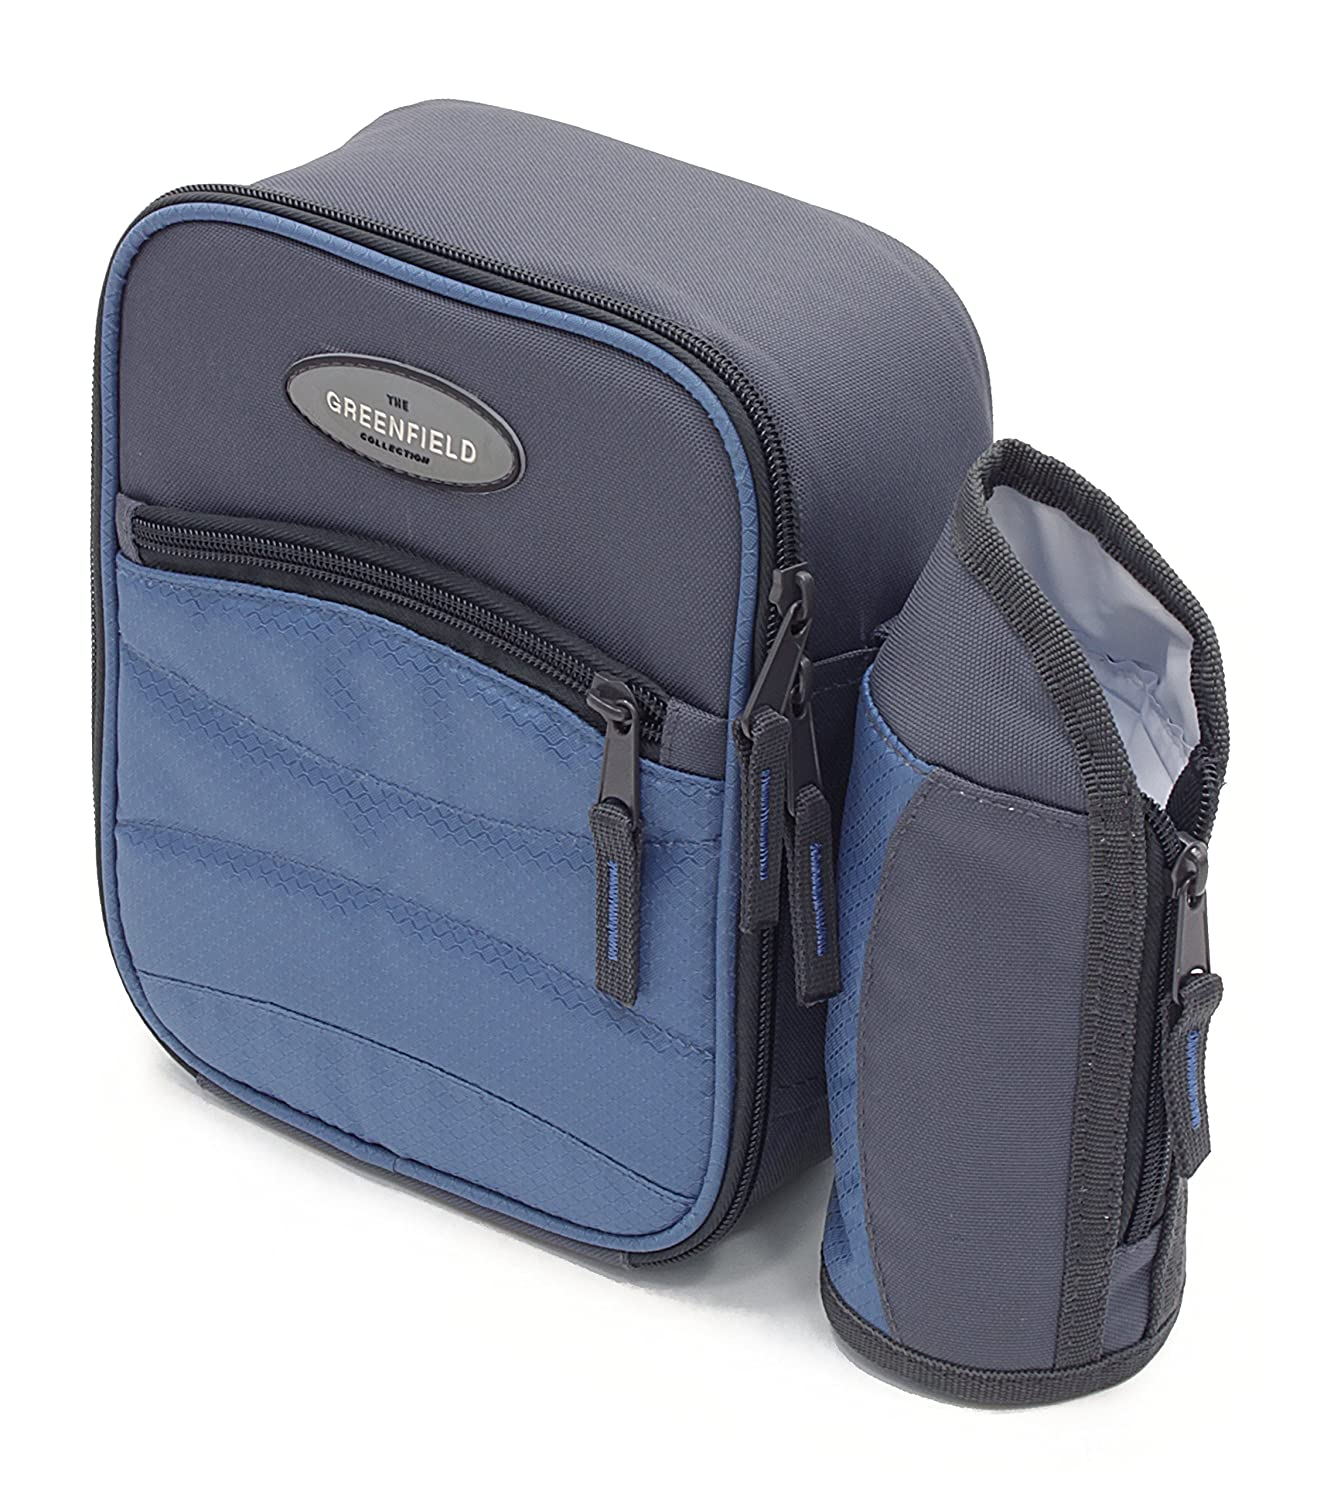 Greenfield Collection 8 Litre Luxury Lightweight Cool Bag - Midnight Blue Kondor L&G CB003H